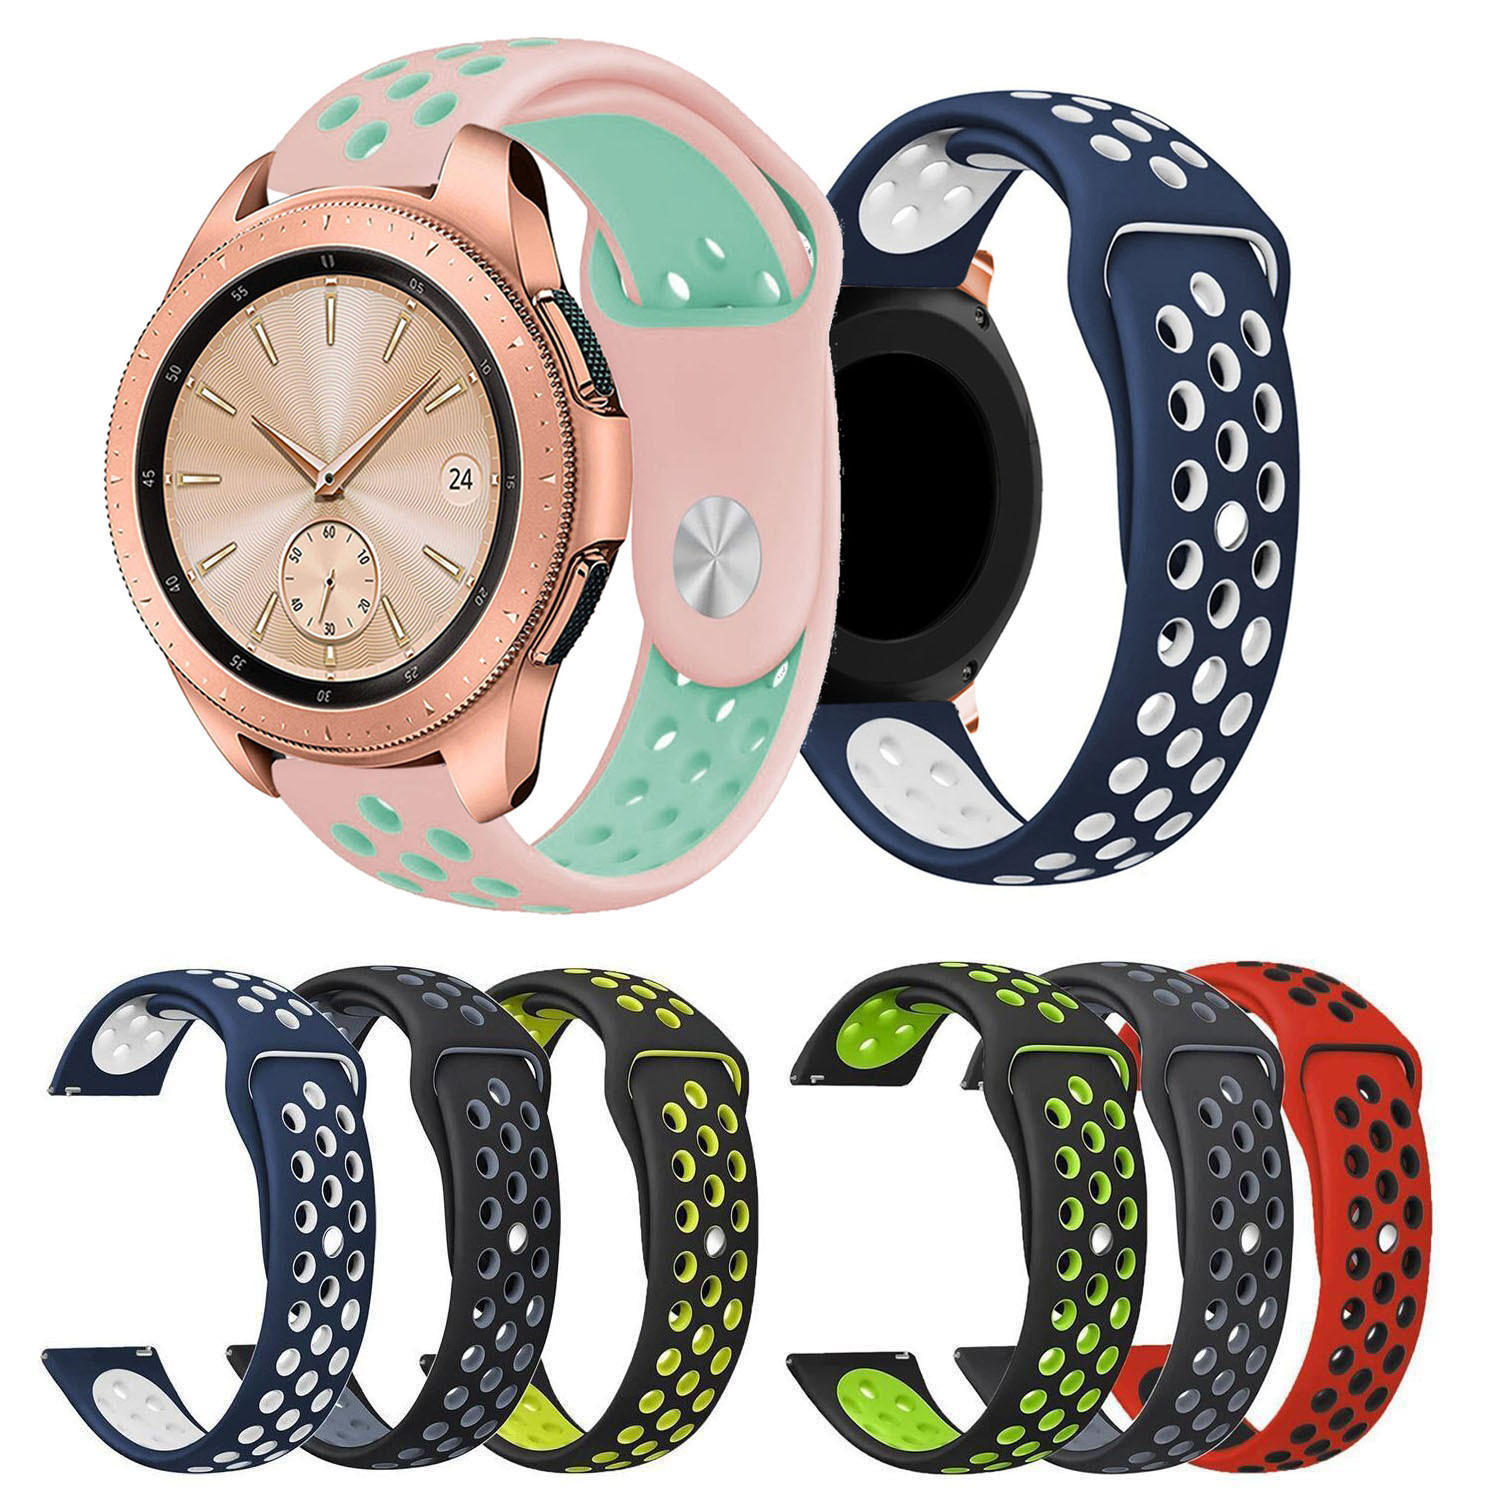 2018 High Quality Silicone Strap For Samsung Galaxy Watch 42mm Band Bracelet Watchband Sport Rubber Wristband